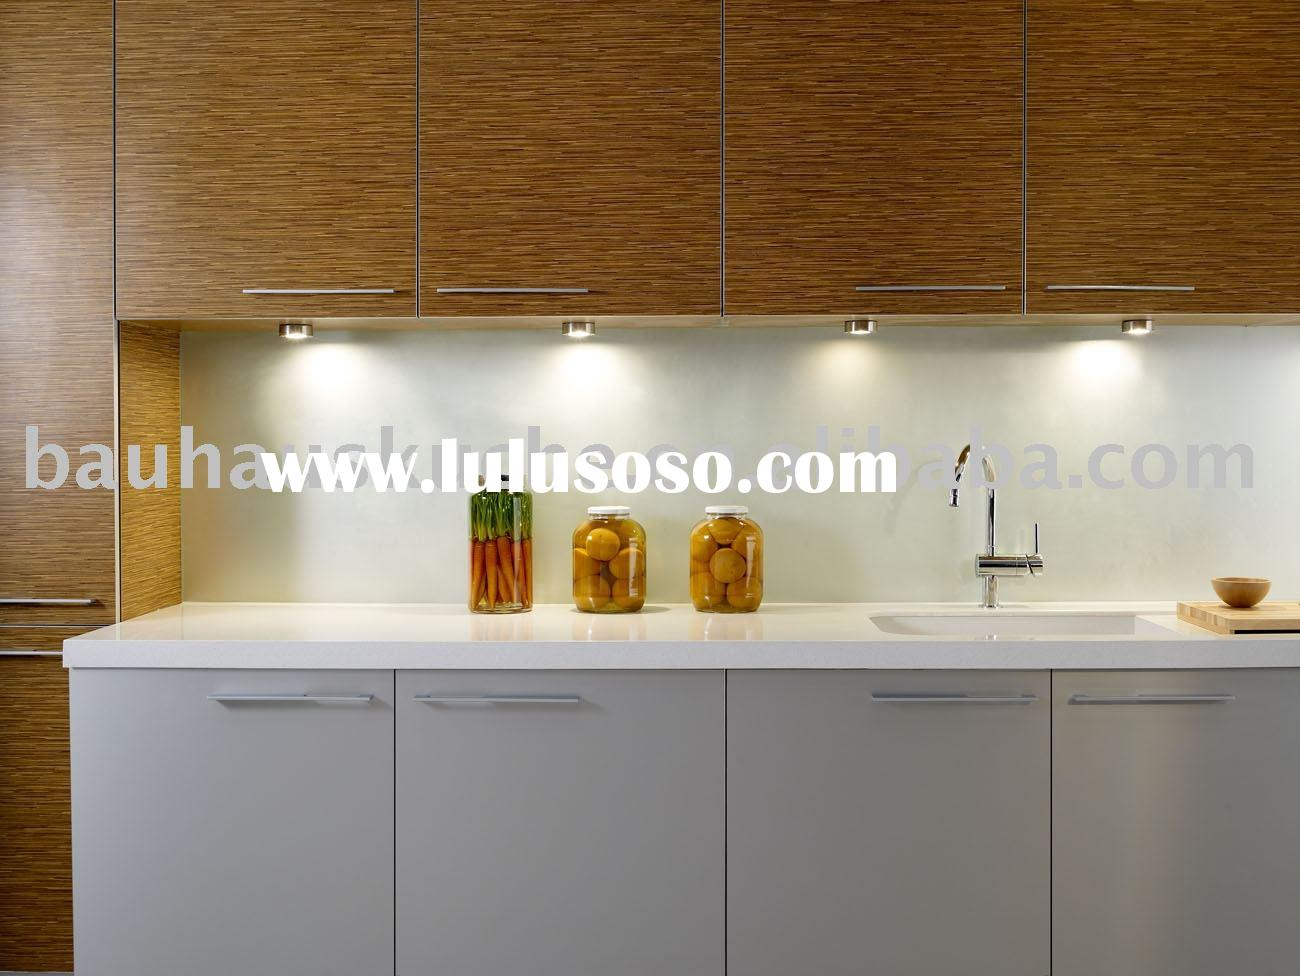 Laminate Kitchen Cabinet Laminate Kitchen Cabinet